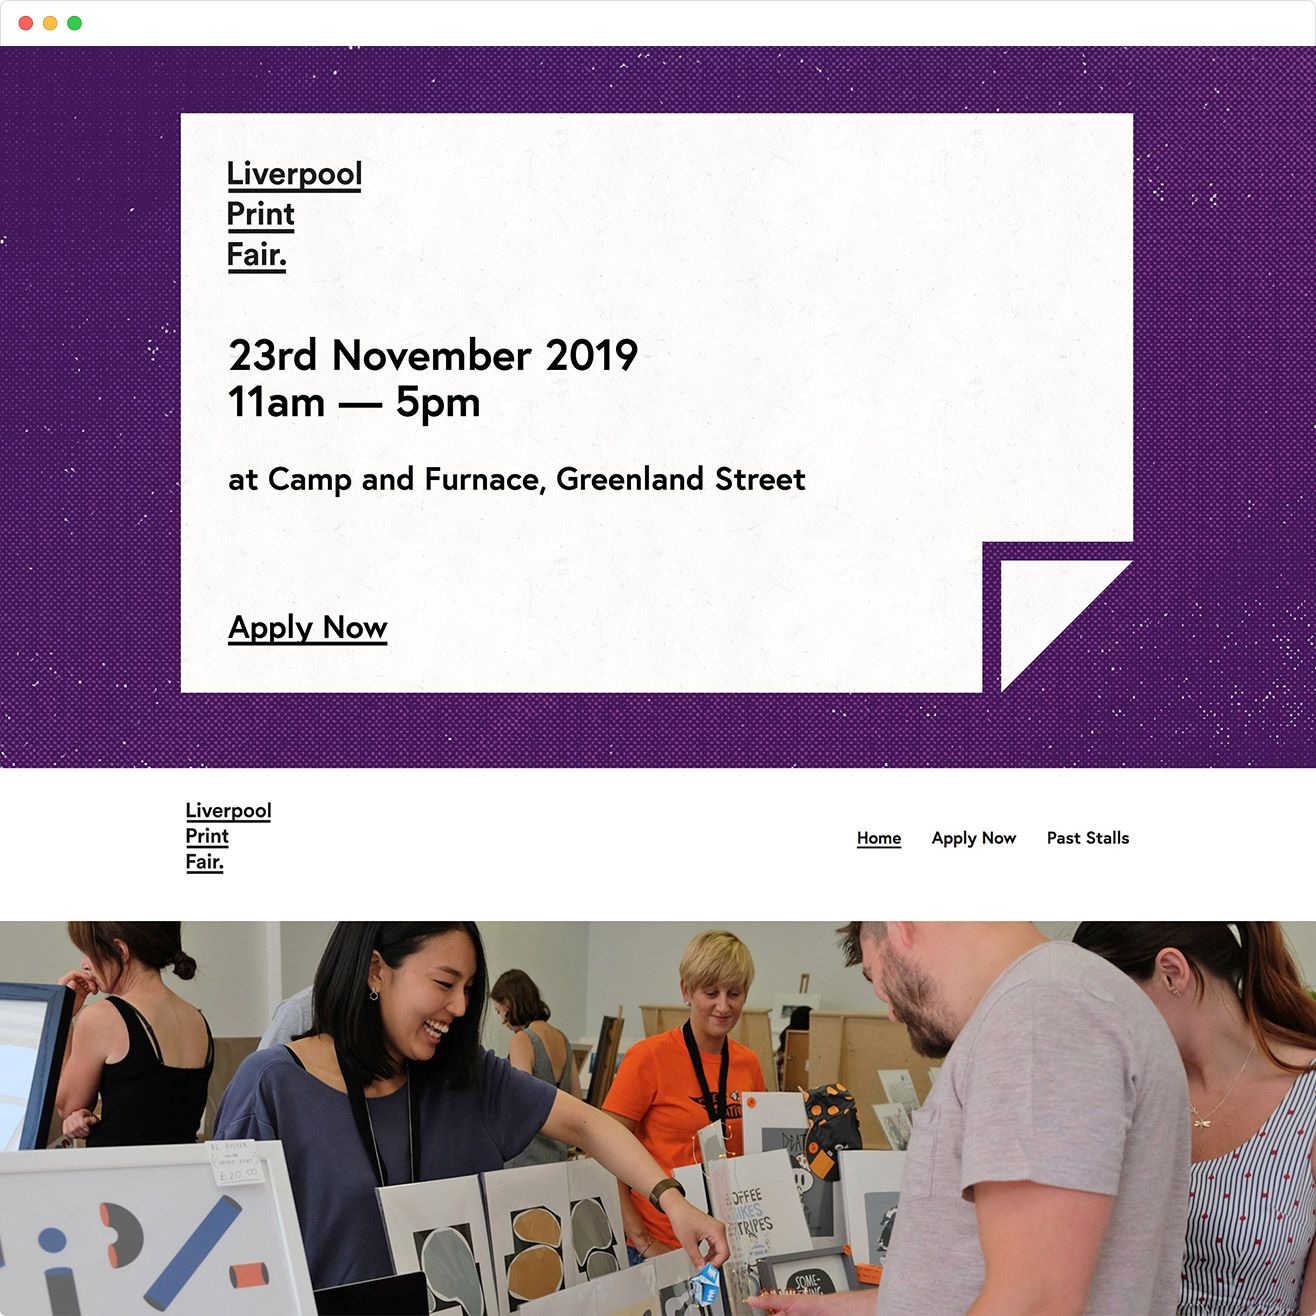 Liverpool Print Fair - Website design by ABigail Sinclair